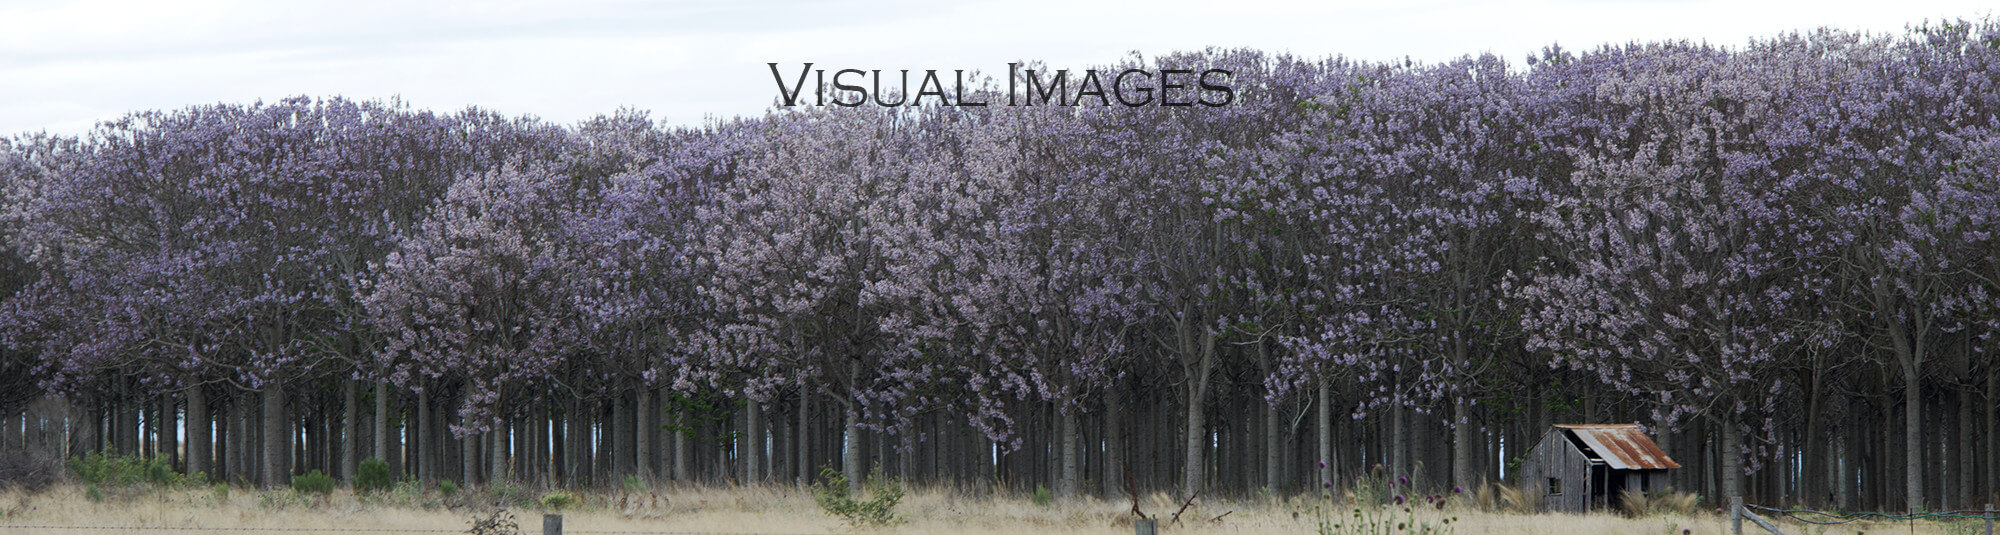 Paulownia tree plantation photograph